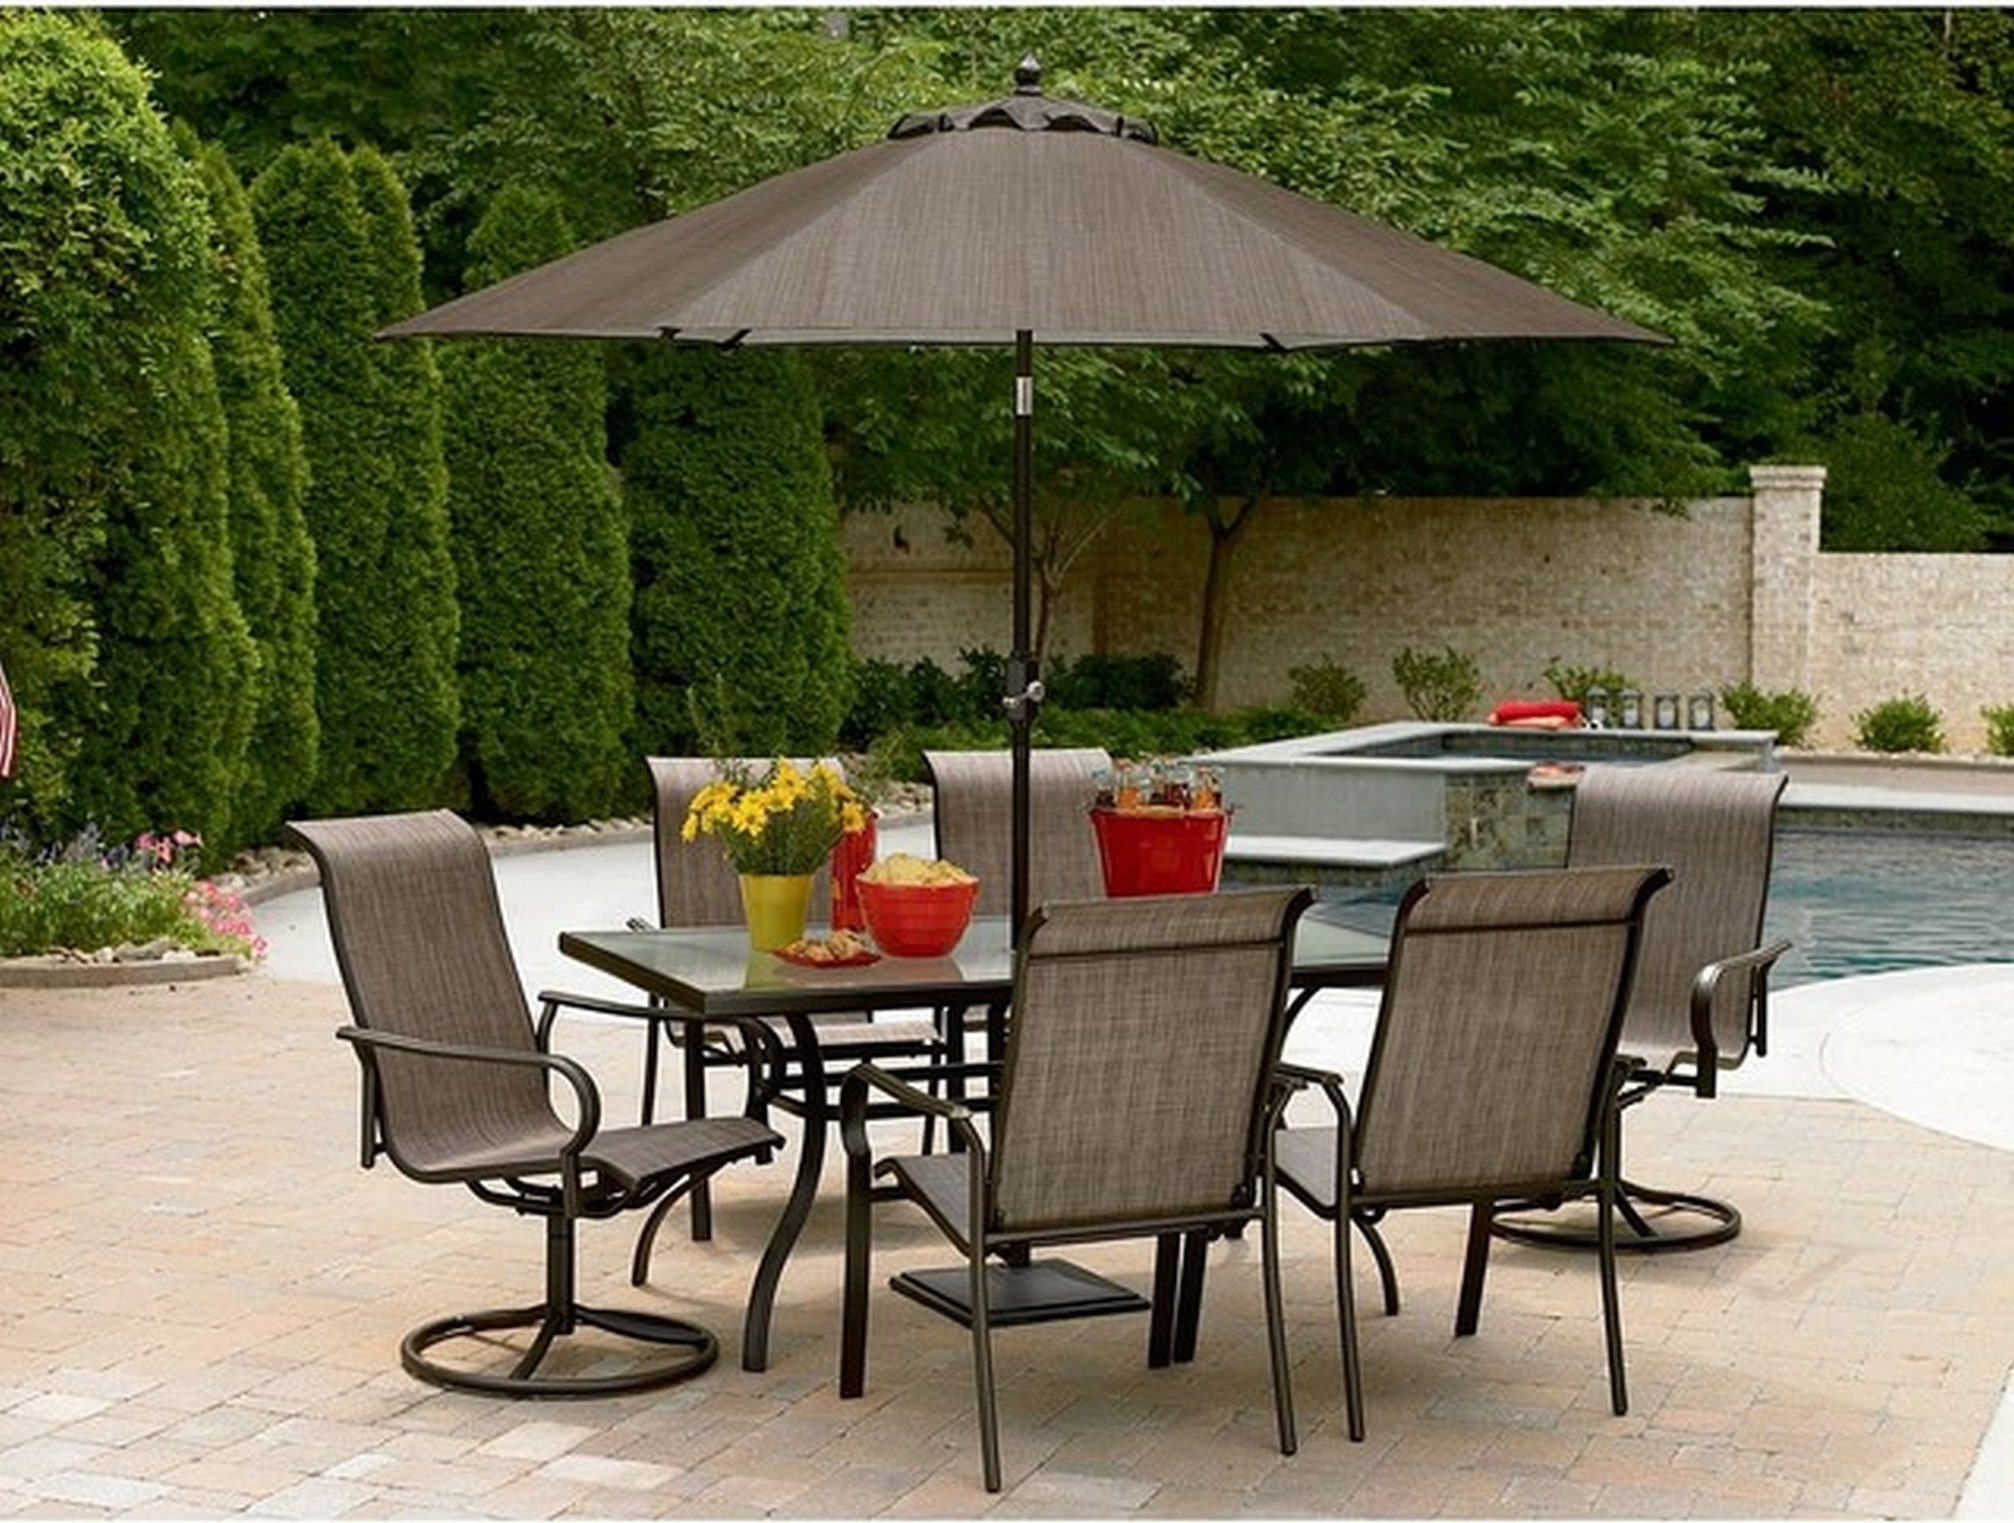 Famous Interior : Patio Table Chairs Umbrella Set New Furniture Sets With Throughout Patio Furniture Sets With Umbrellas (Gallery 1 of 20)